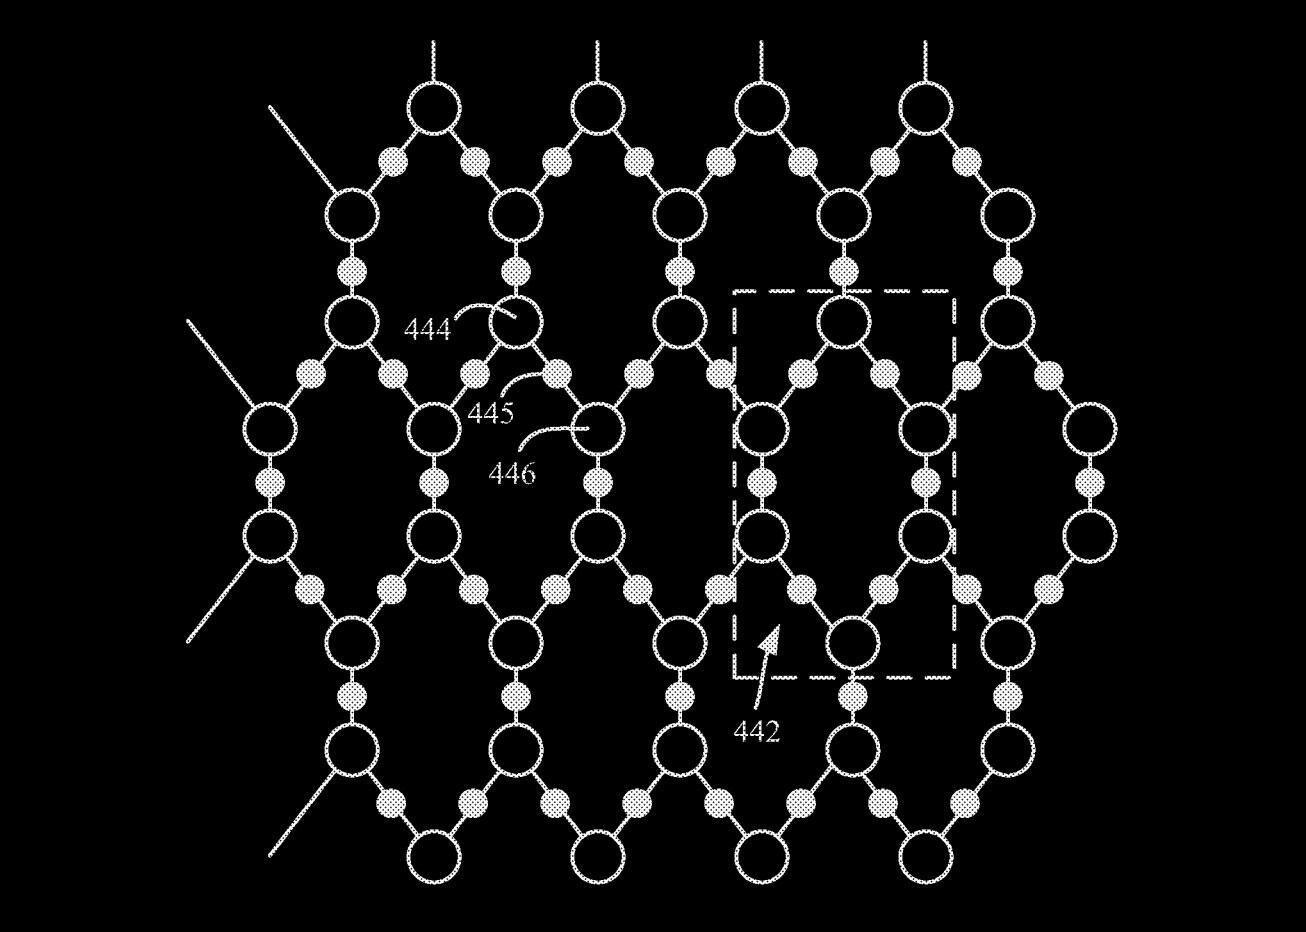 An IBM patent shows a hexagonal array of qubits in a quantum computer, arranged to minimize problems controlling the finicky data processing elements.